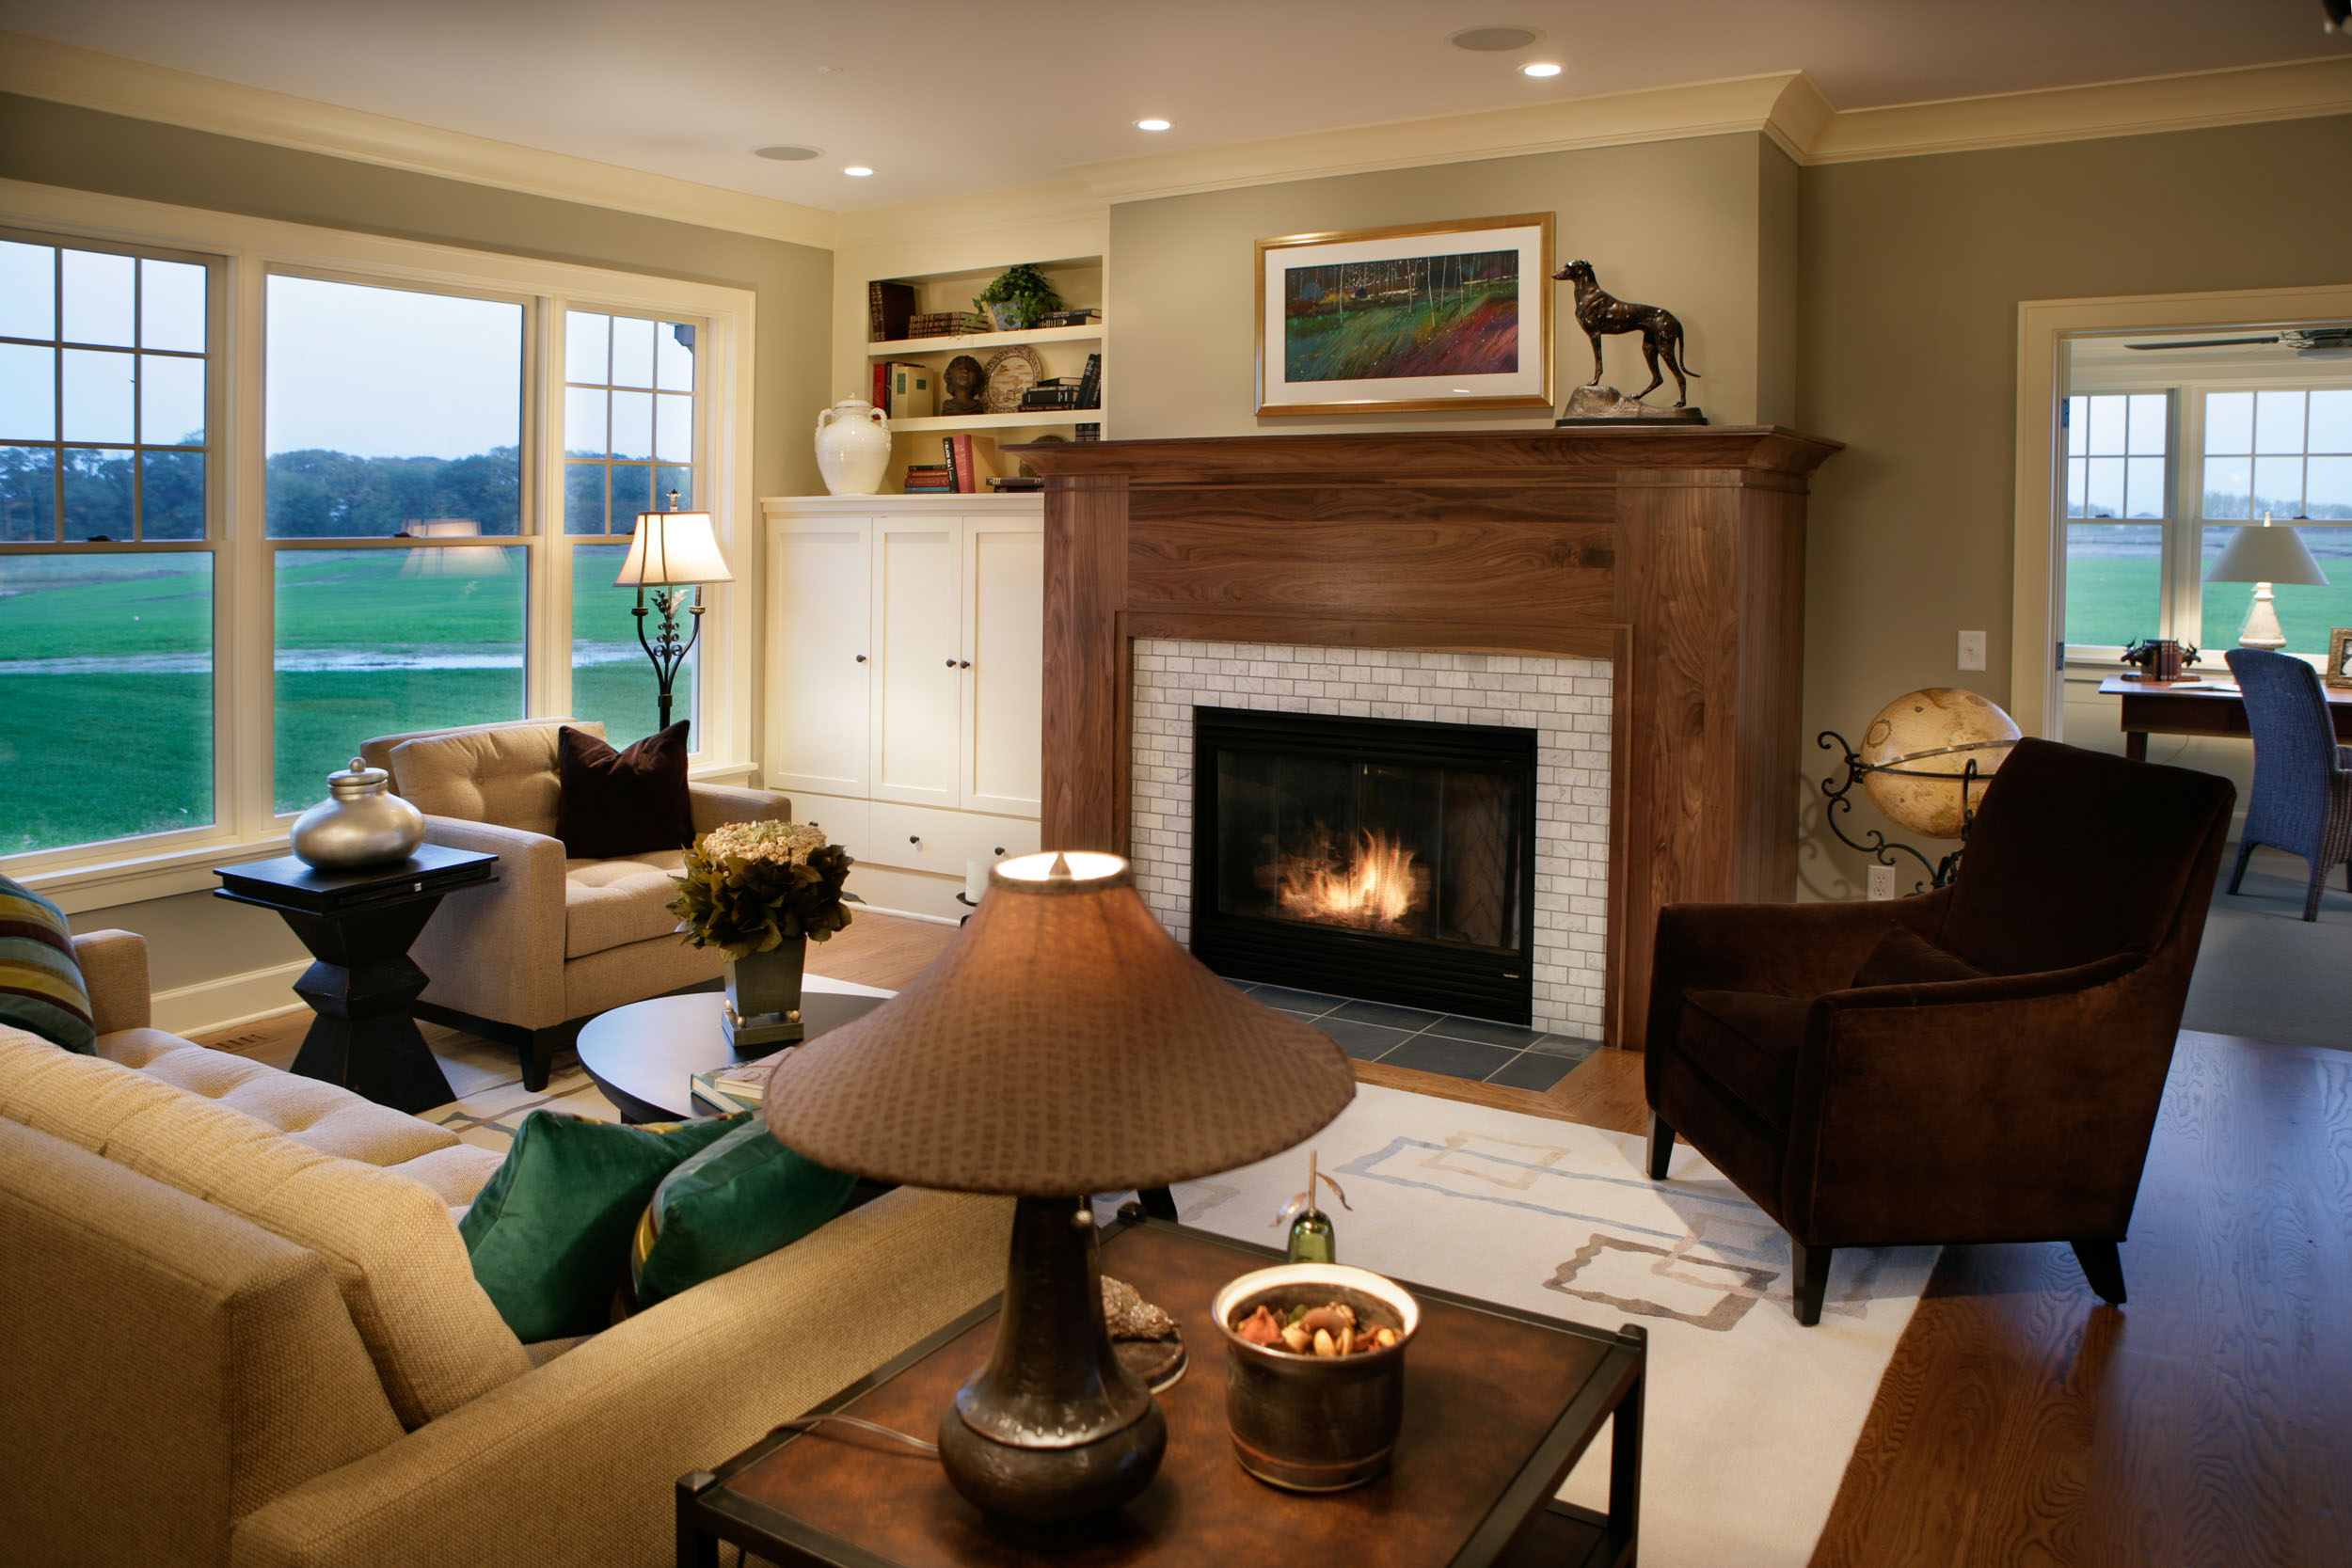 Cape Cod Living Room Image